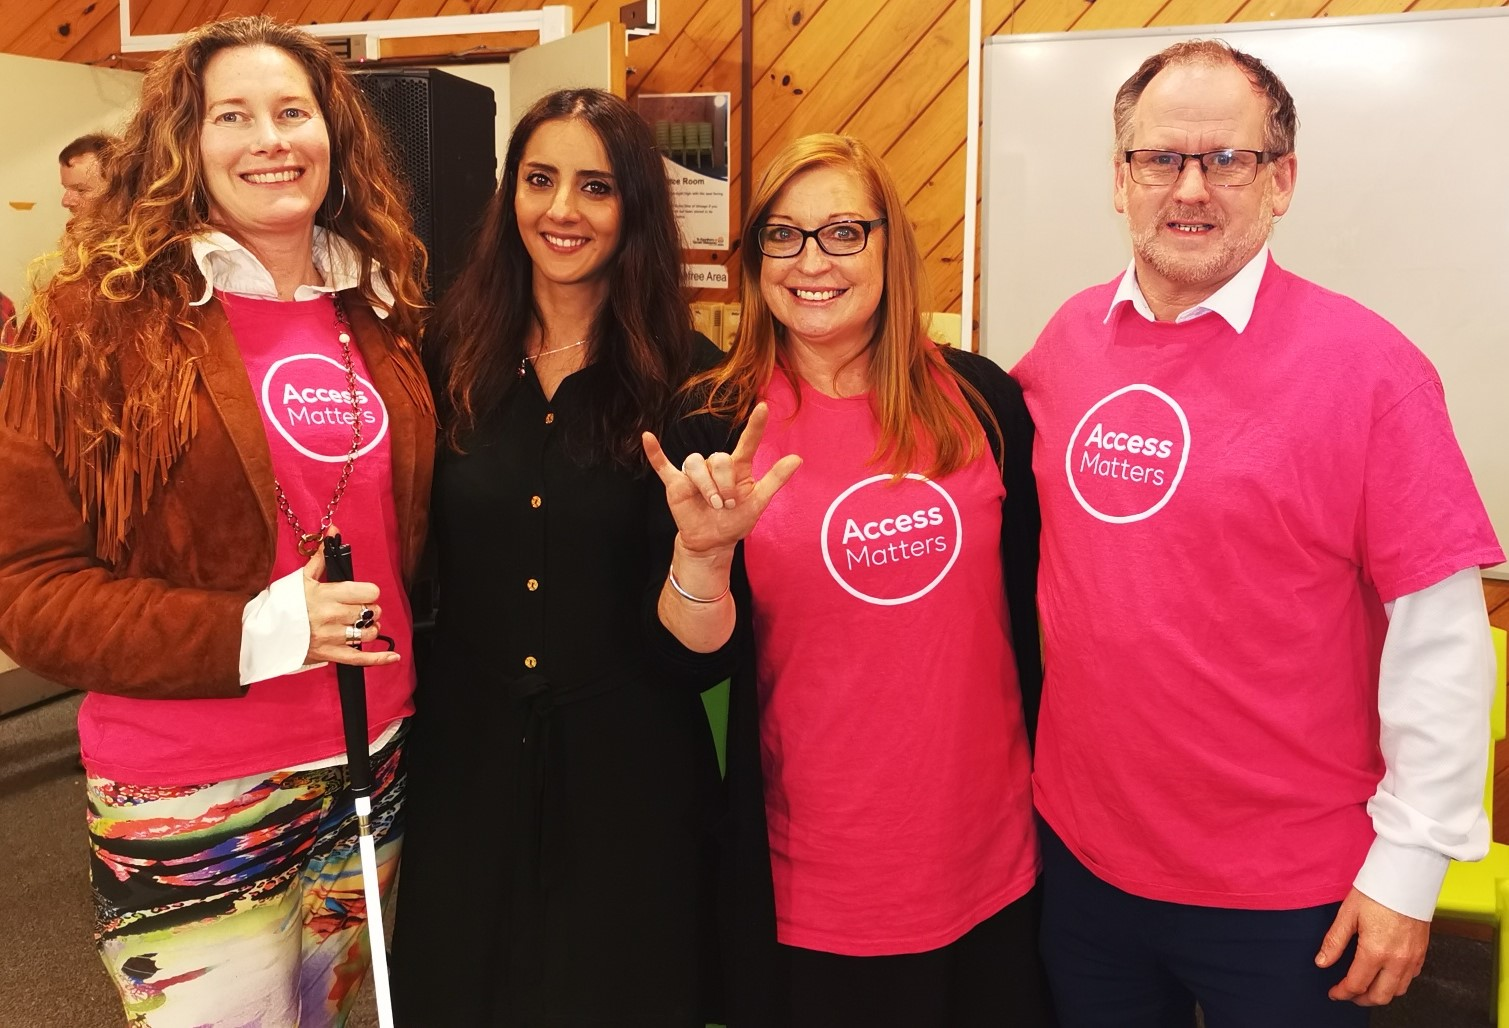 A photos of Green MP Golriz Ghahraman with Access Matters members